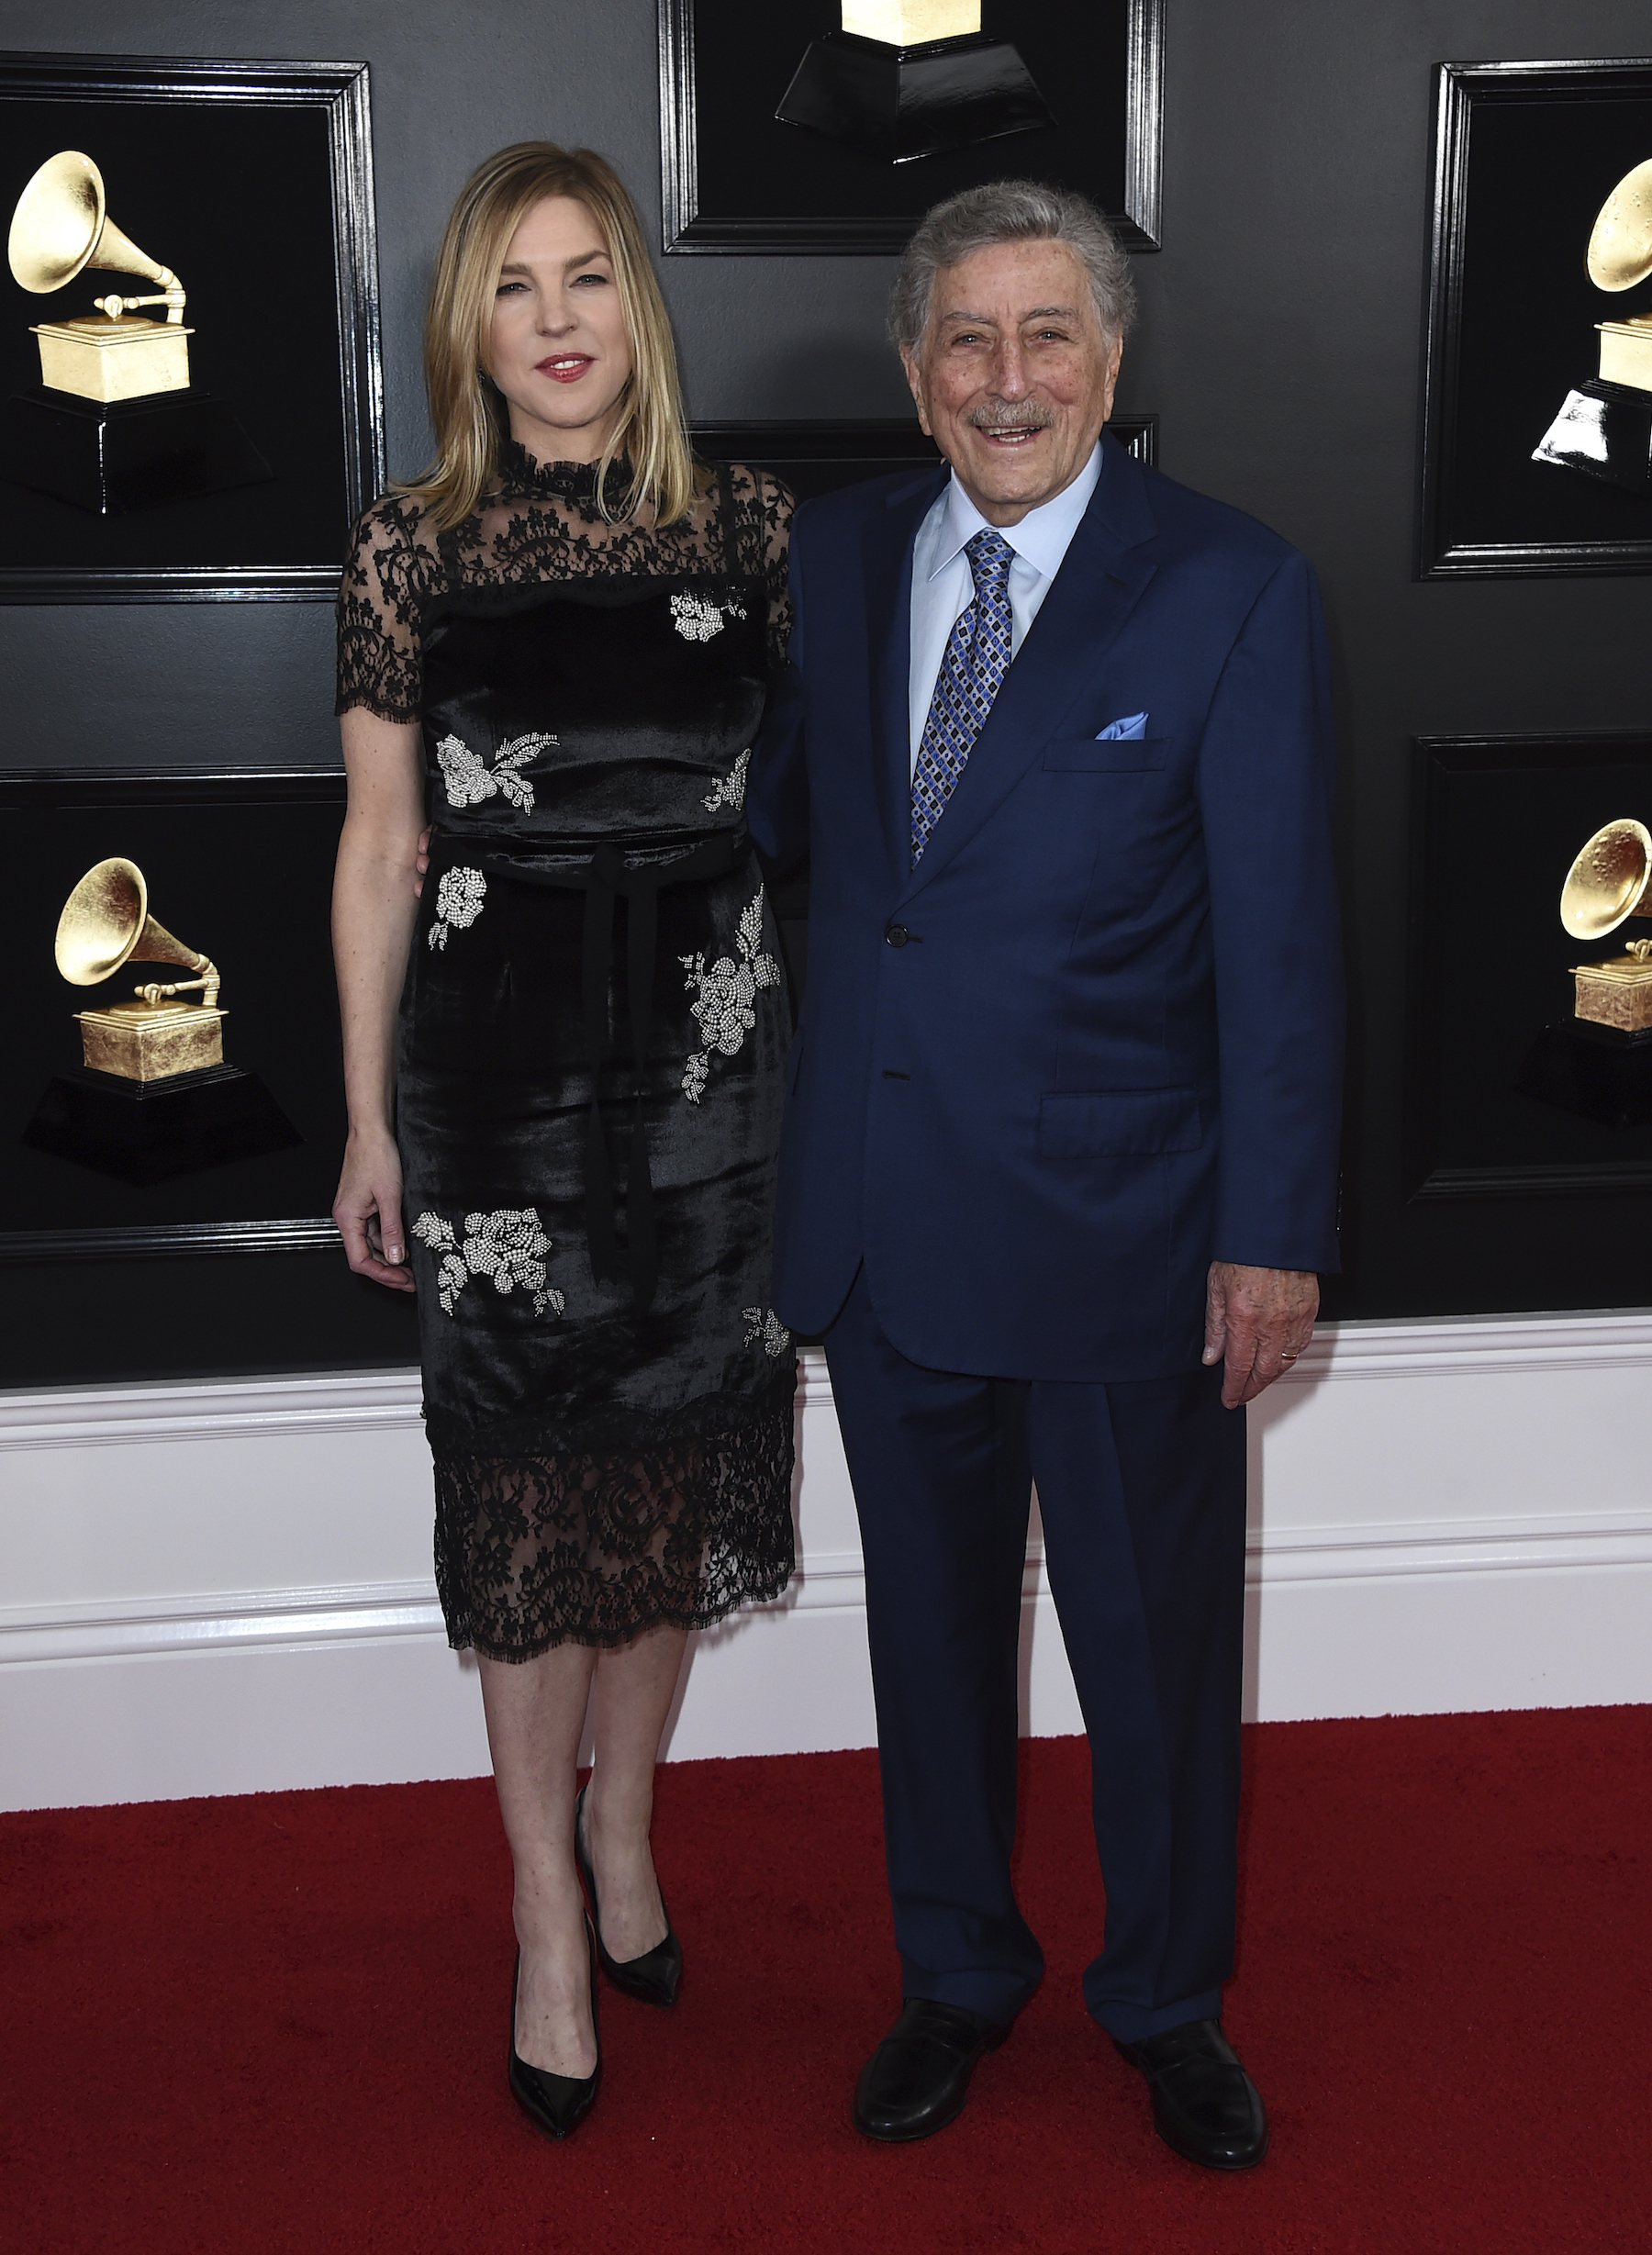 <div class='meta'><div class='origin-logo' data-origin='AP'></div><span class='caption-text' data-credit='Jordan Strauss/Invision/AP'>Diana Krall, left, and Tony Bennett arrive at the 61st annual Grammy Awards at the Staples Center on Sunday, Feb. 10, 2019, in Los Angeles.</span></div>